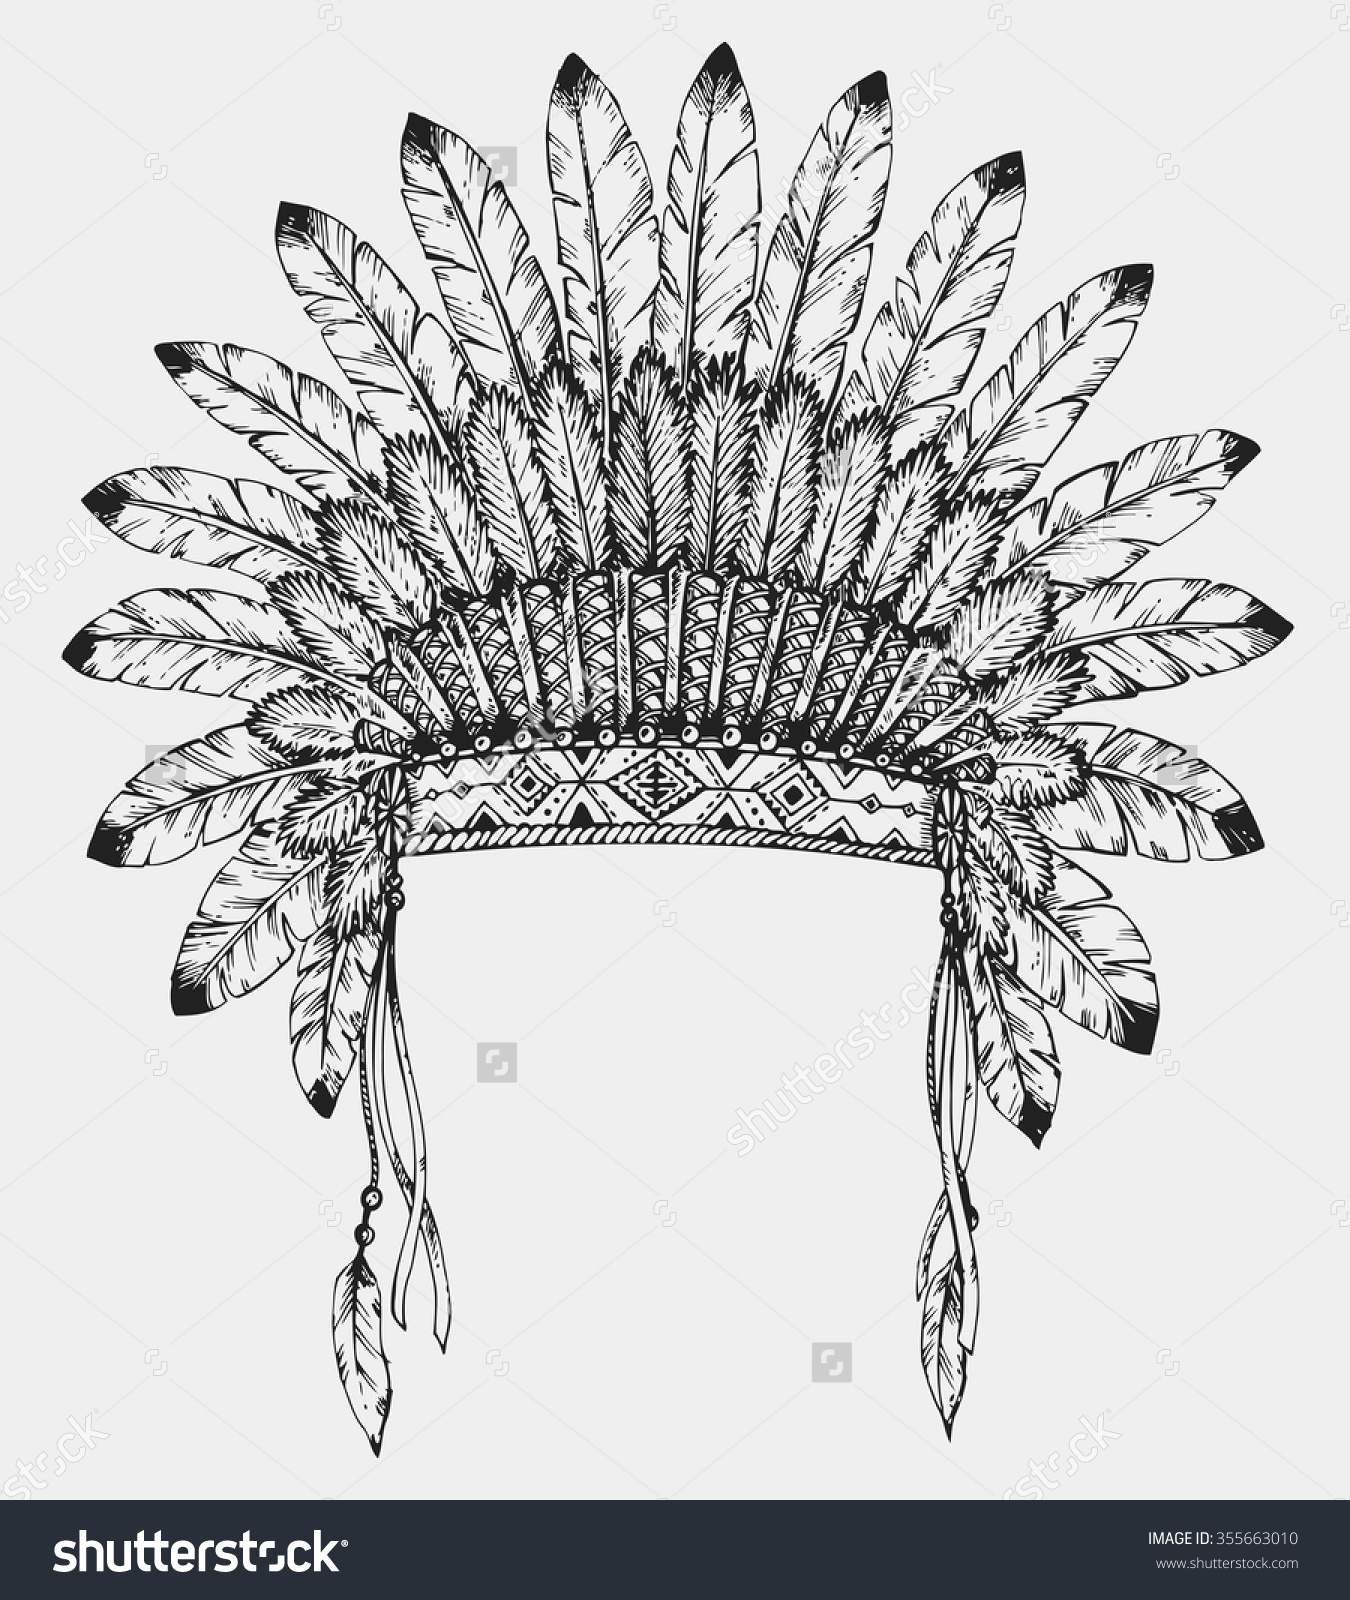 Headdress clipart indian hat Drawing Search konkurs Google american